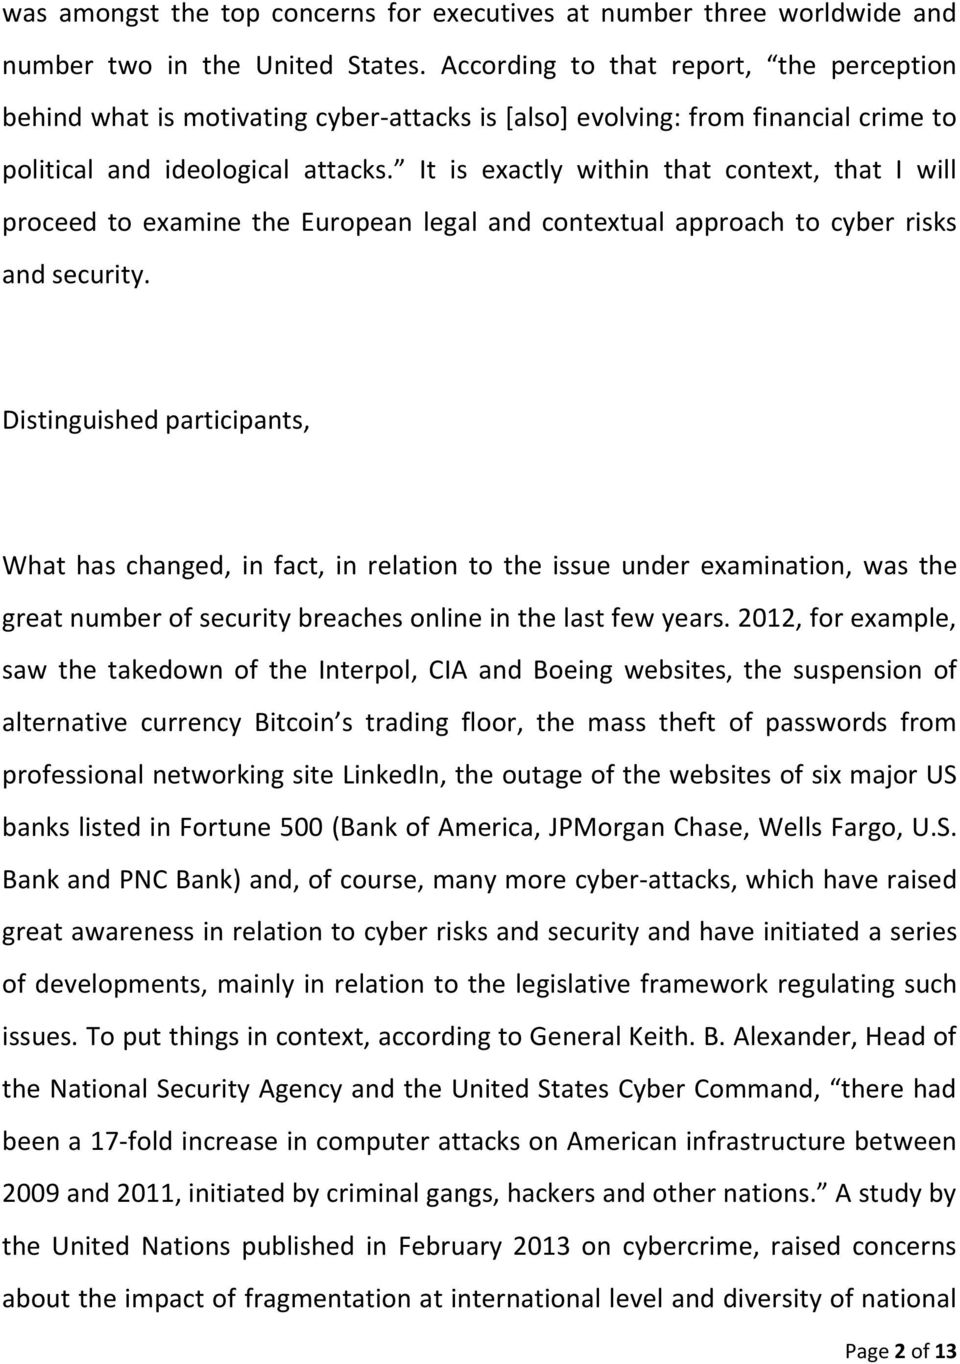 It is exactly within that context, that I will proceed to examine the European legal and contextual approach to cyber risks and security.